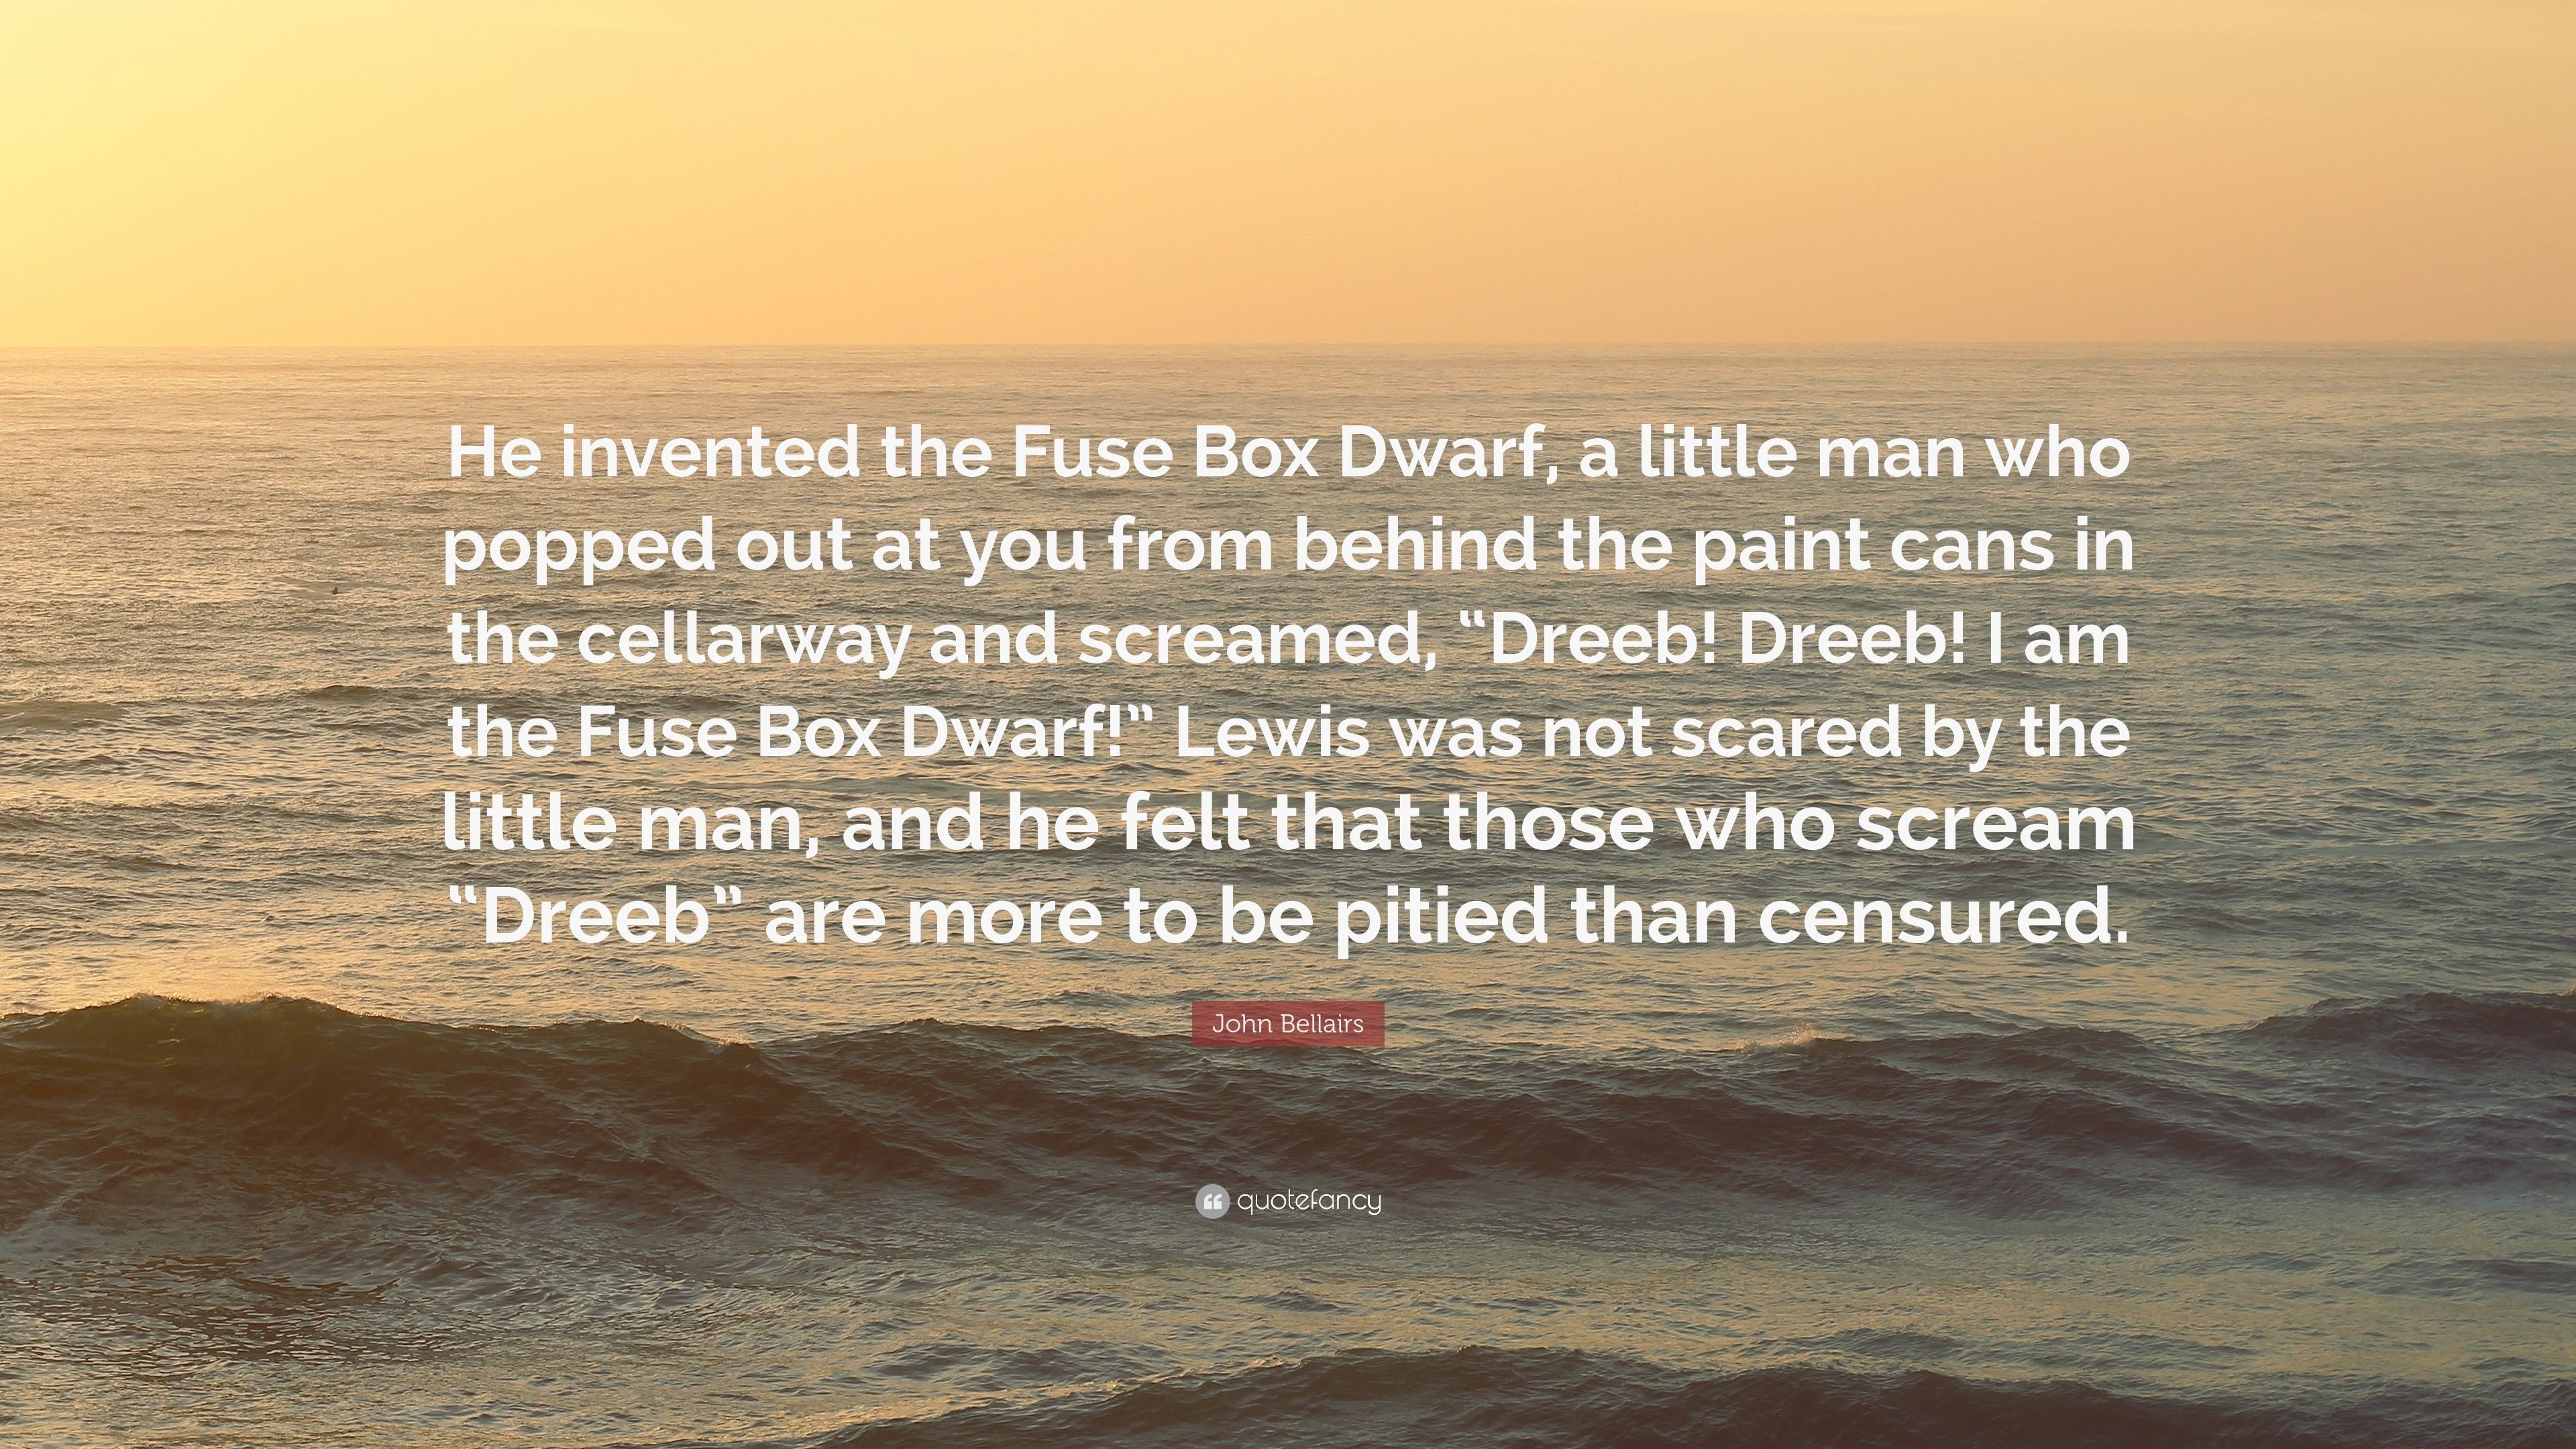 3297084 John Bellairs Quote He invented the Fuse Box Dwarf a little man john bellairs quote \u201che invented the fuse box dwarf, a little man  at edmiracle.co